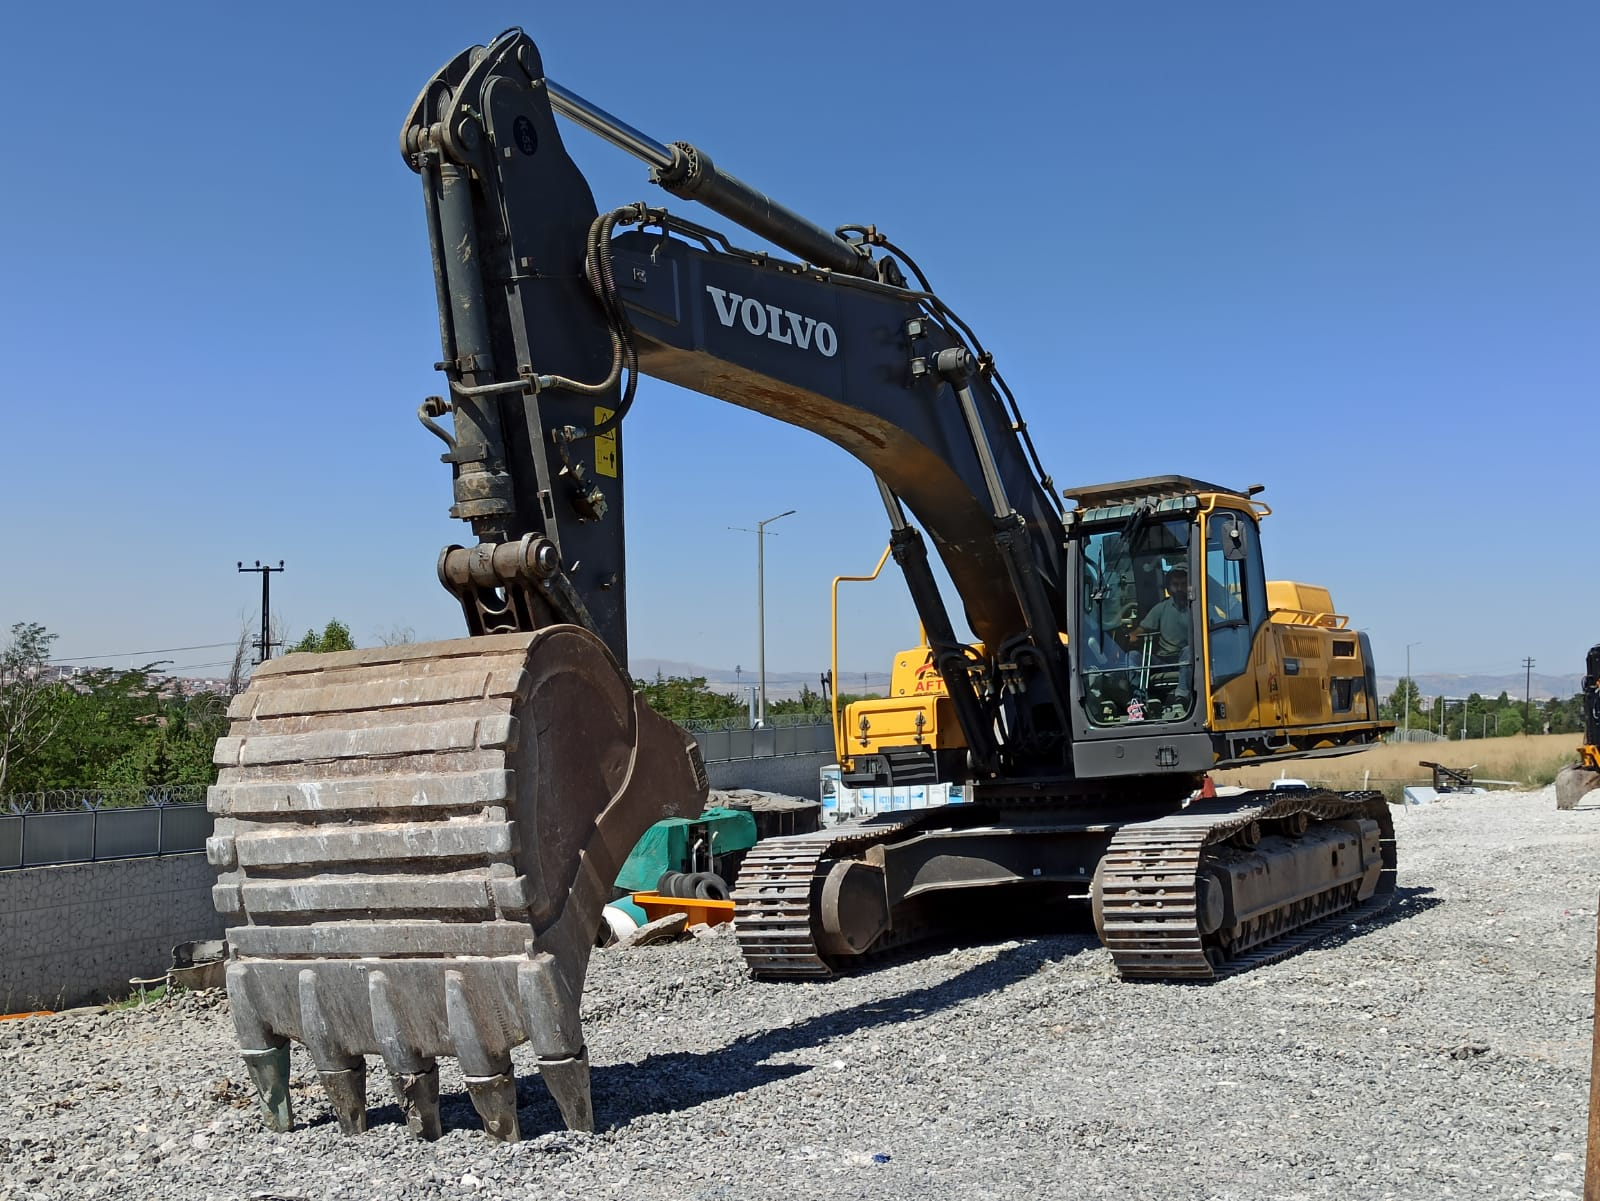 2016 MODEL VOLVO EC 480 DL EXCAVATOR